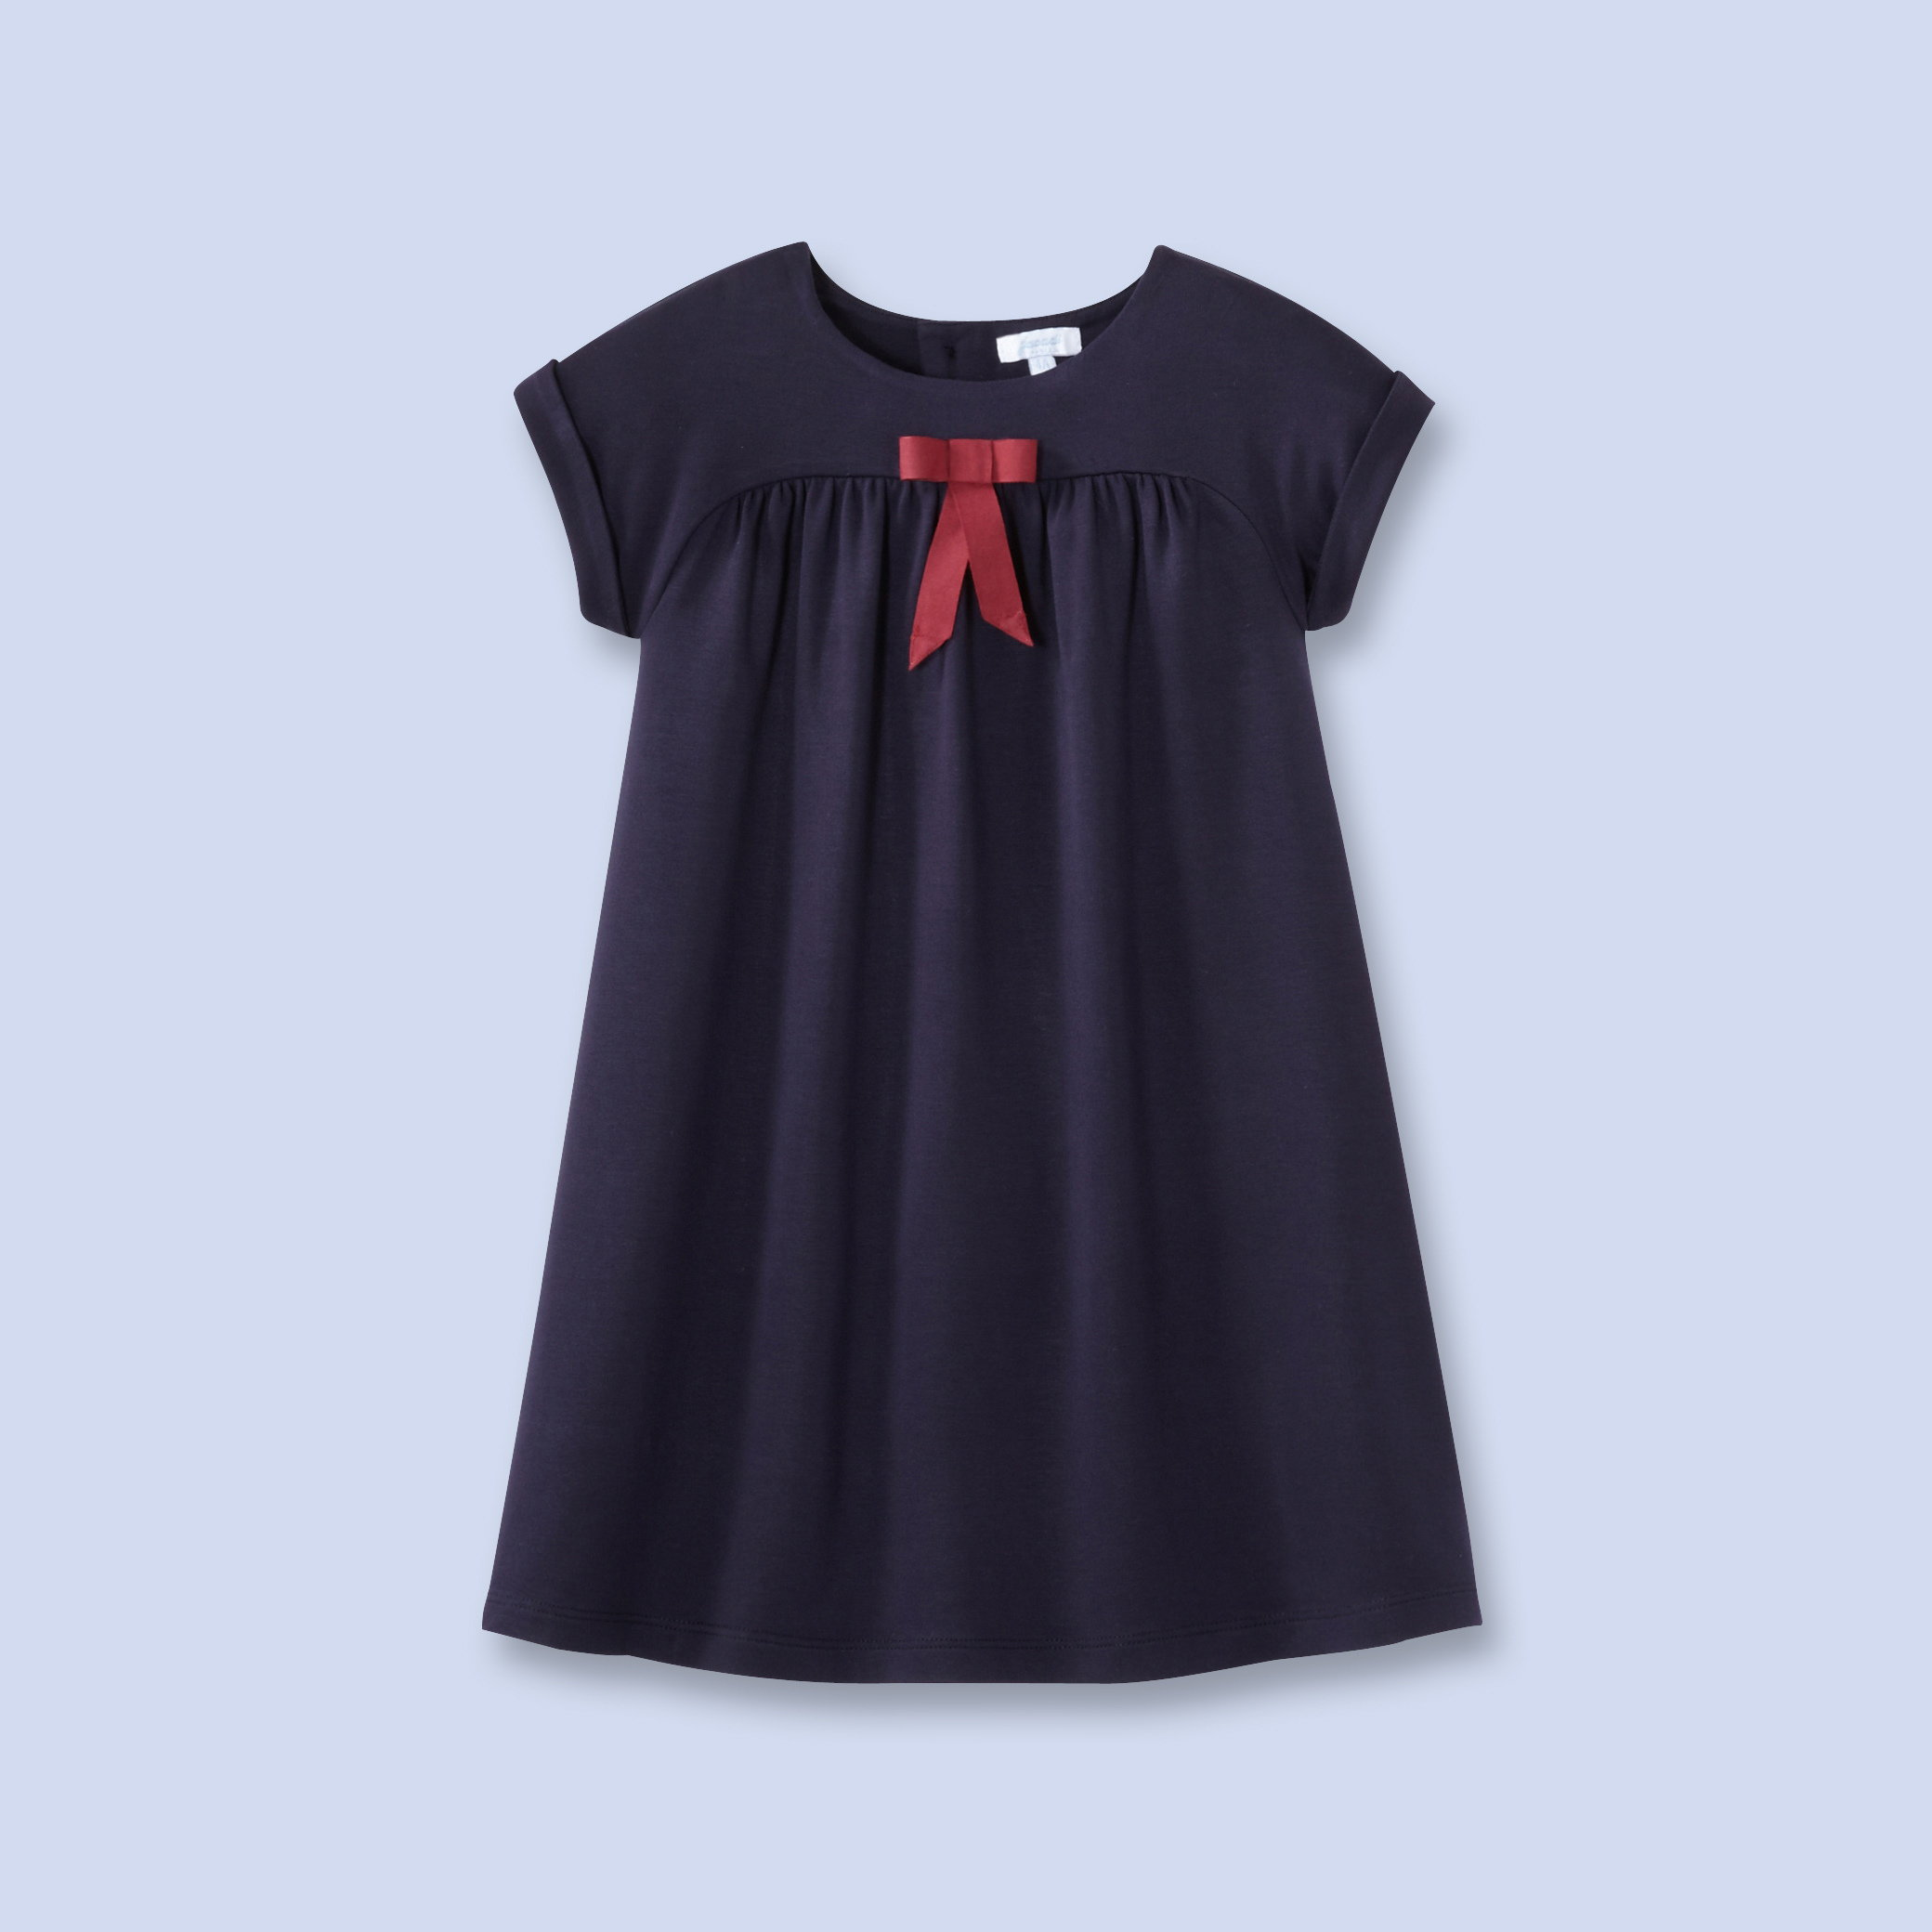 line jersey dress - Girl - NAVY BLUE - from jacadi.us   The